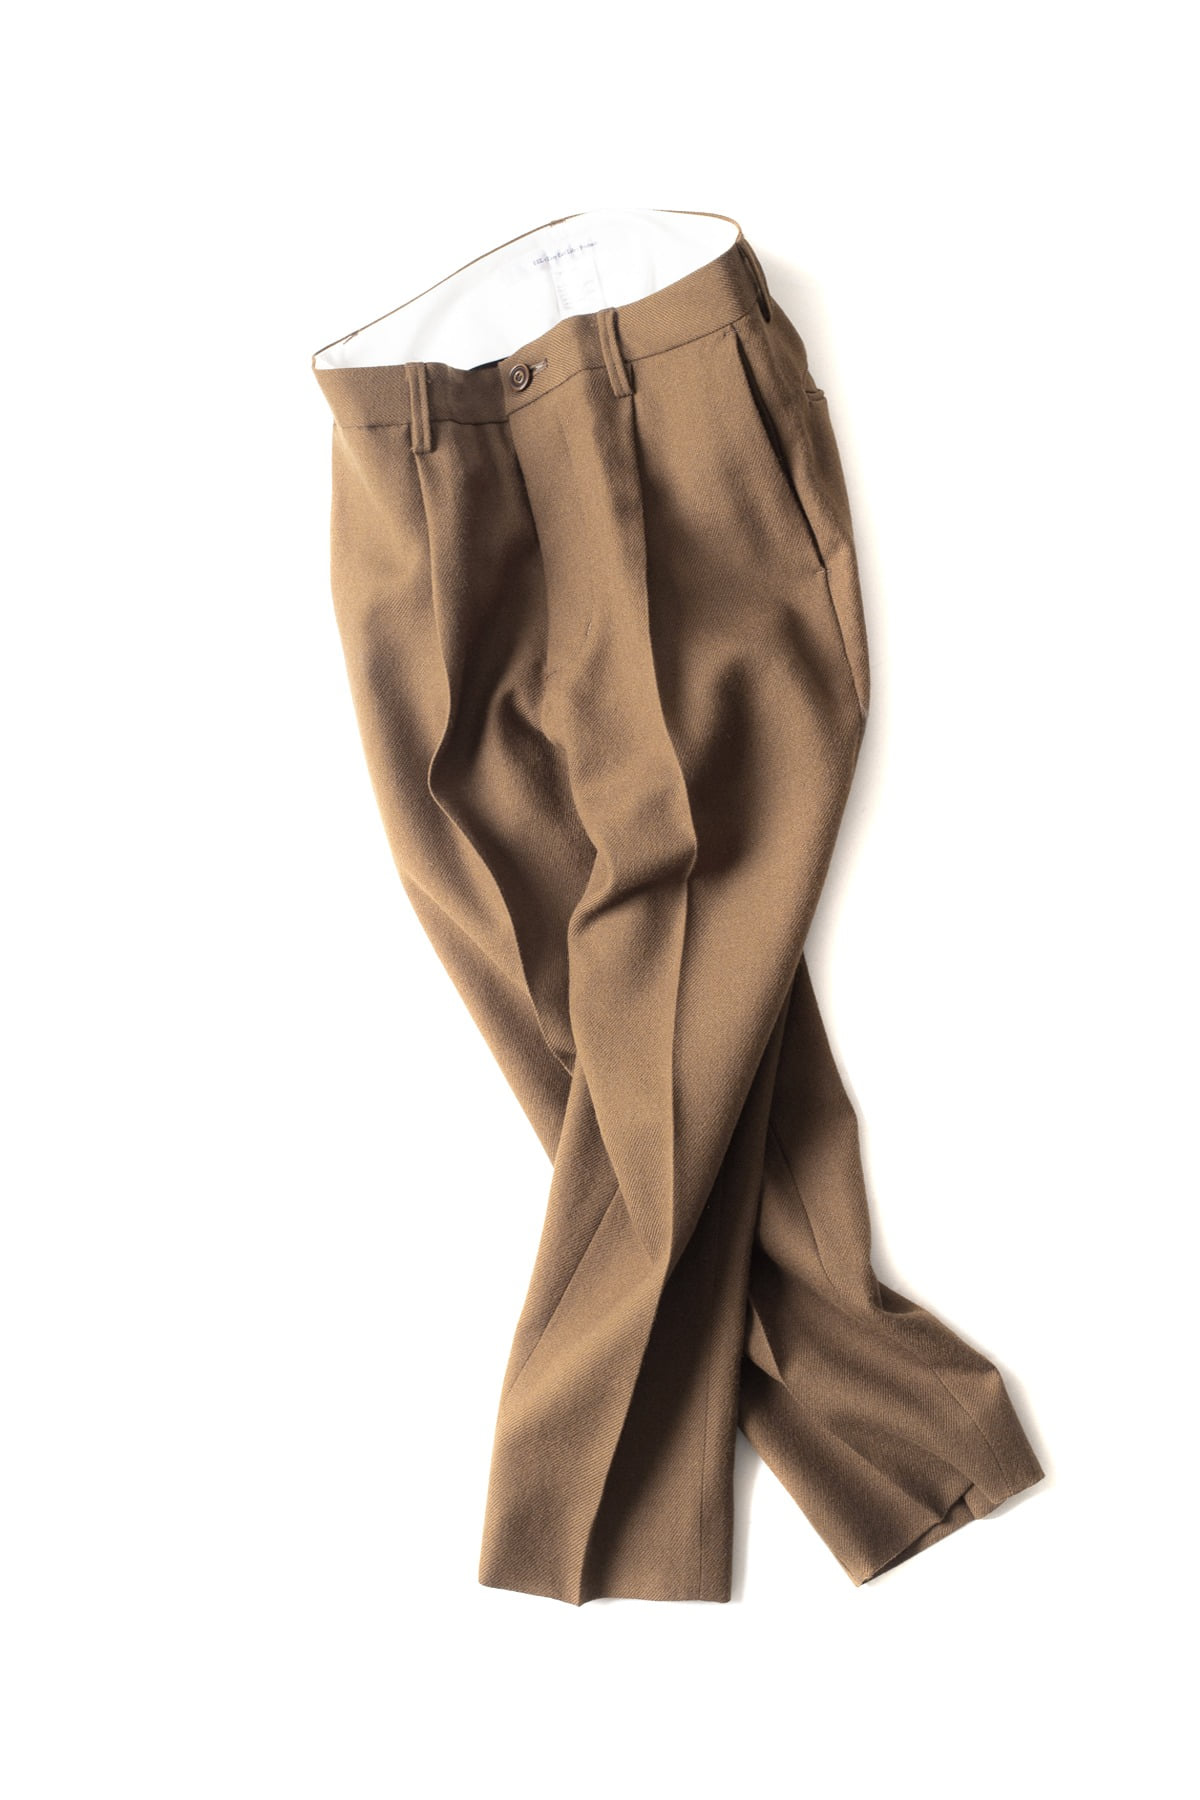 EEL : Shonen Pants (Brown)